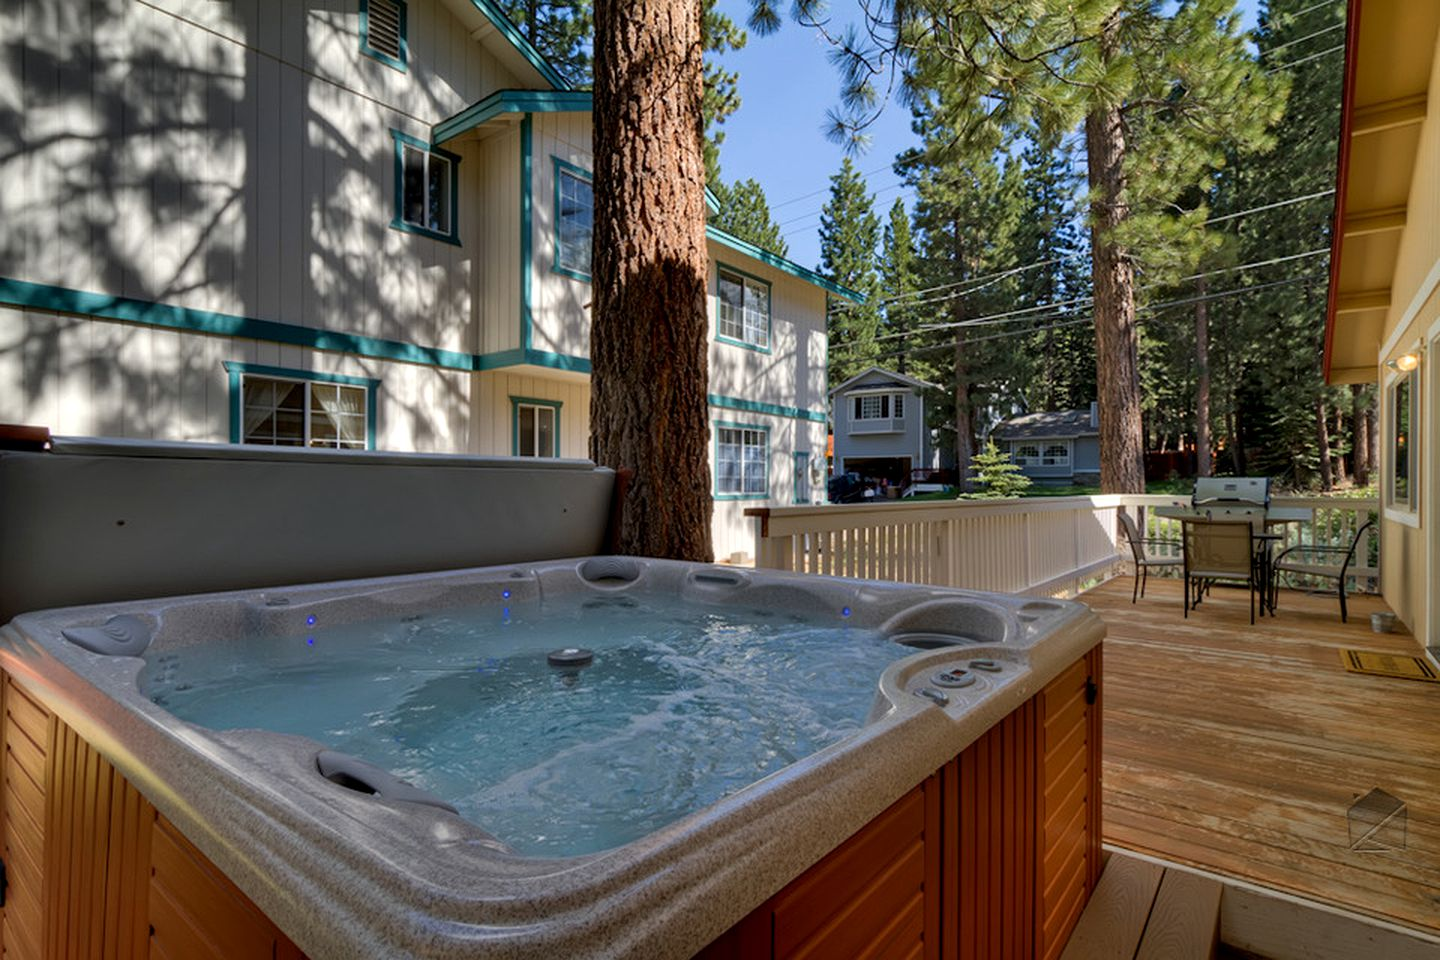 Cottages (South Lake Tahoe, California, United States)